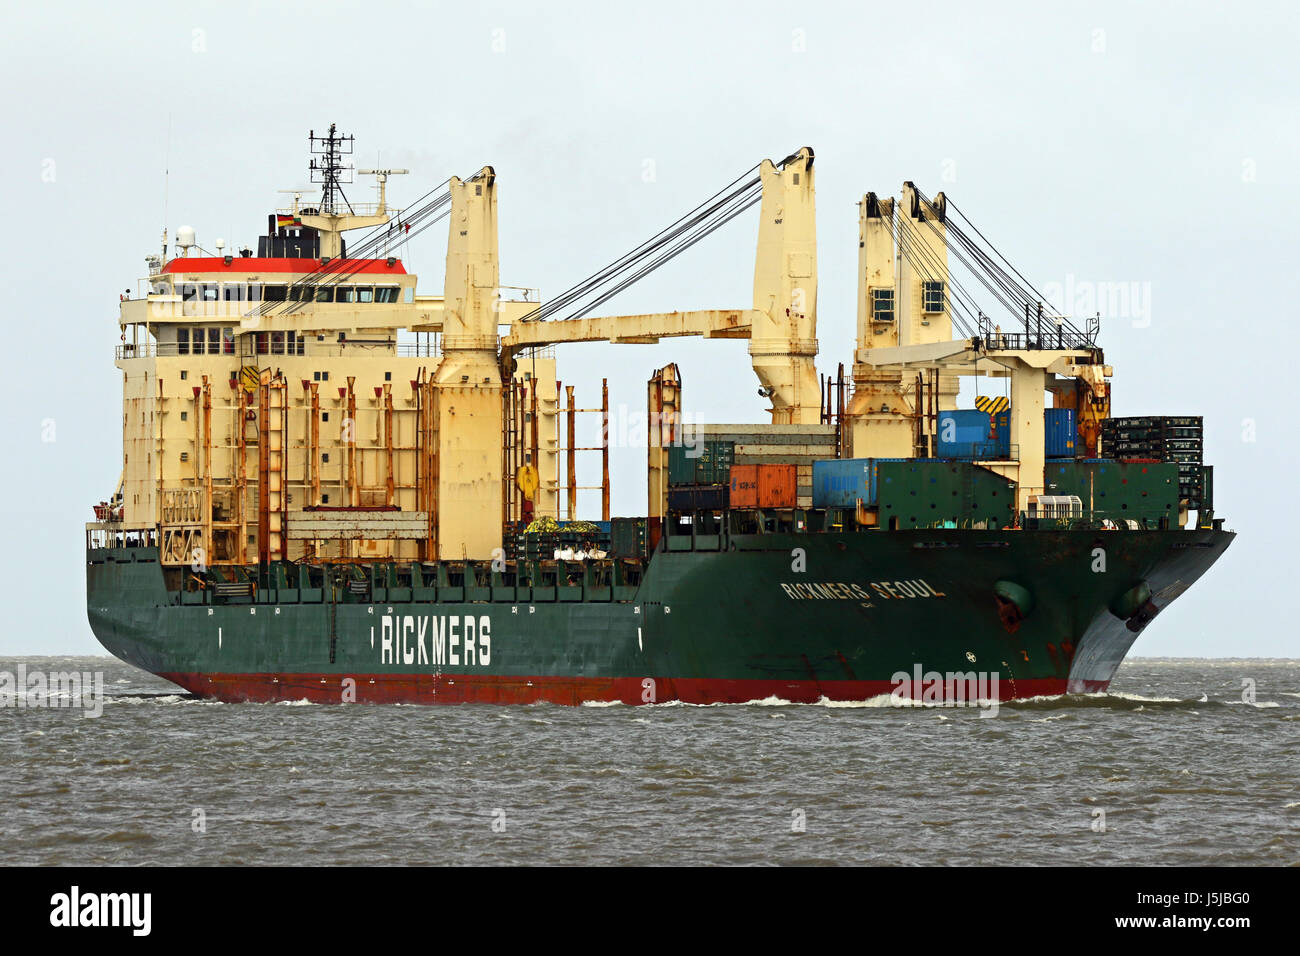 The general cargo ship Rickmers Seoul passes the port of Cuxhaven on the Elbe on 13 April 2017. - Stock Image